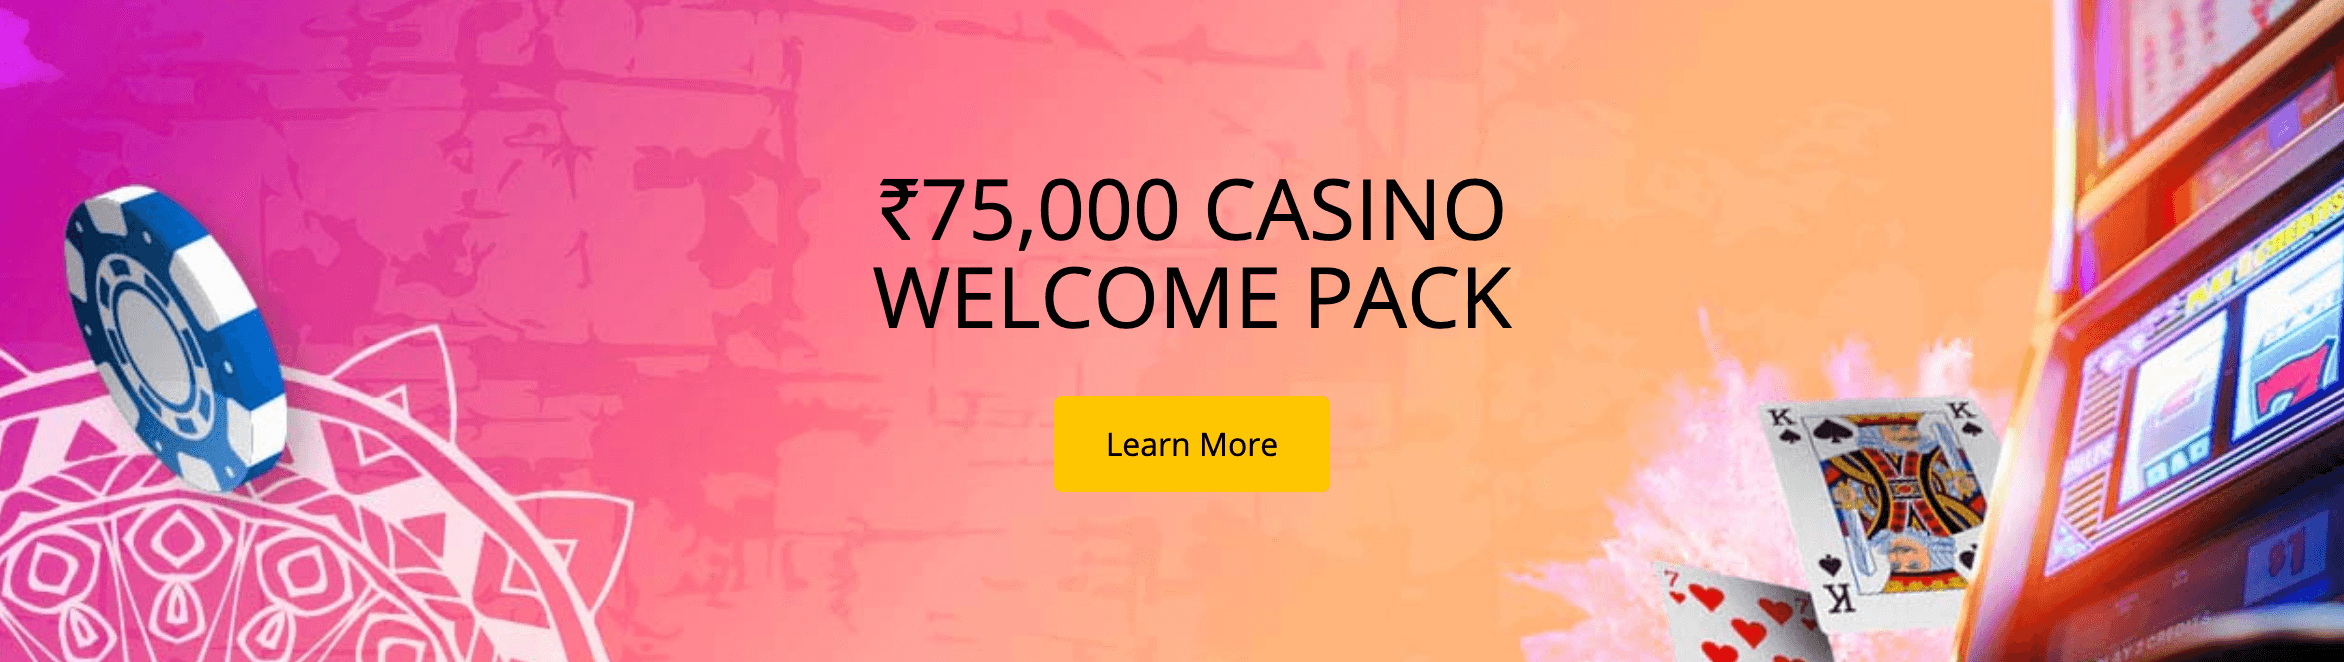 10cric casino welcome pack